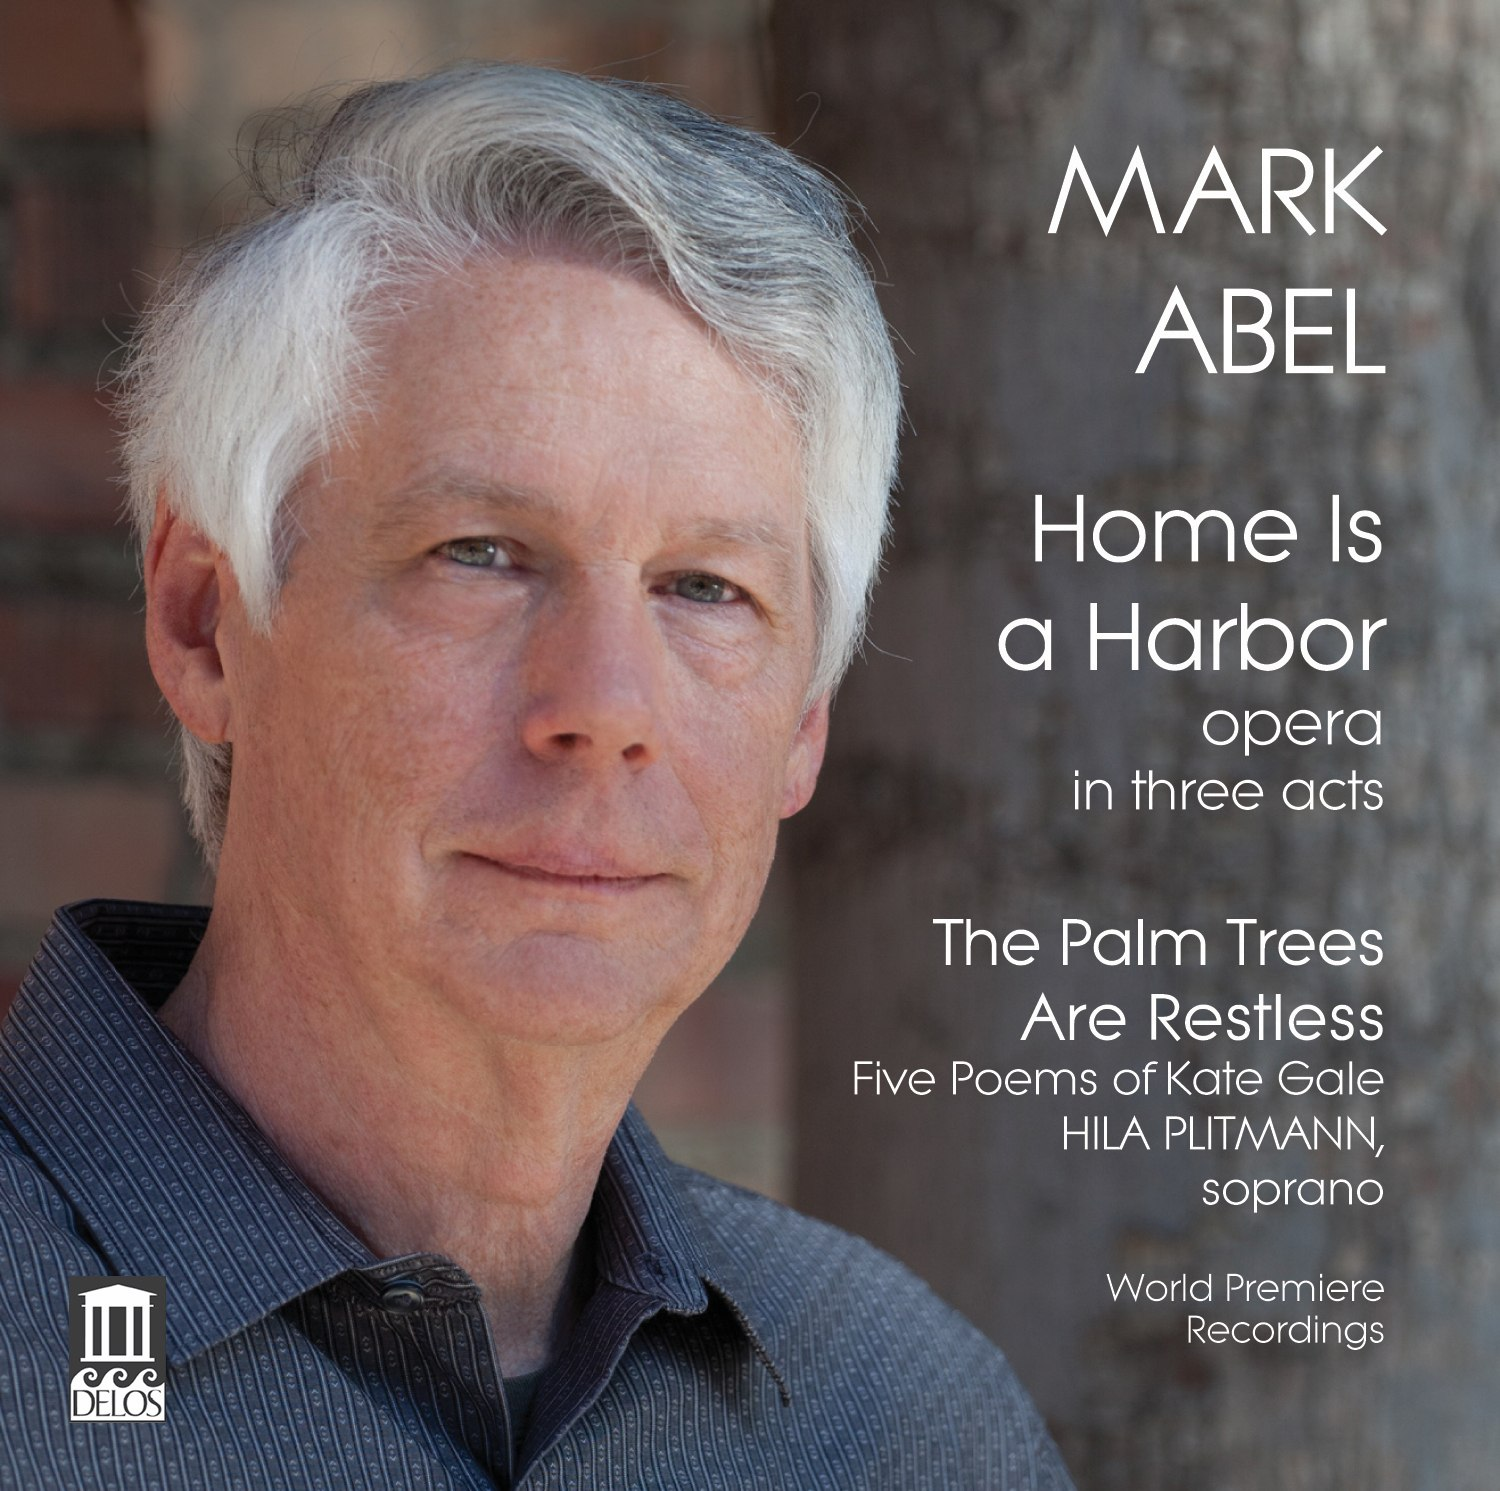 Mark Abel: Home is a Harbor